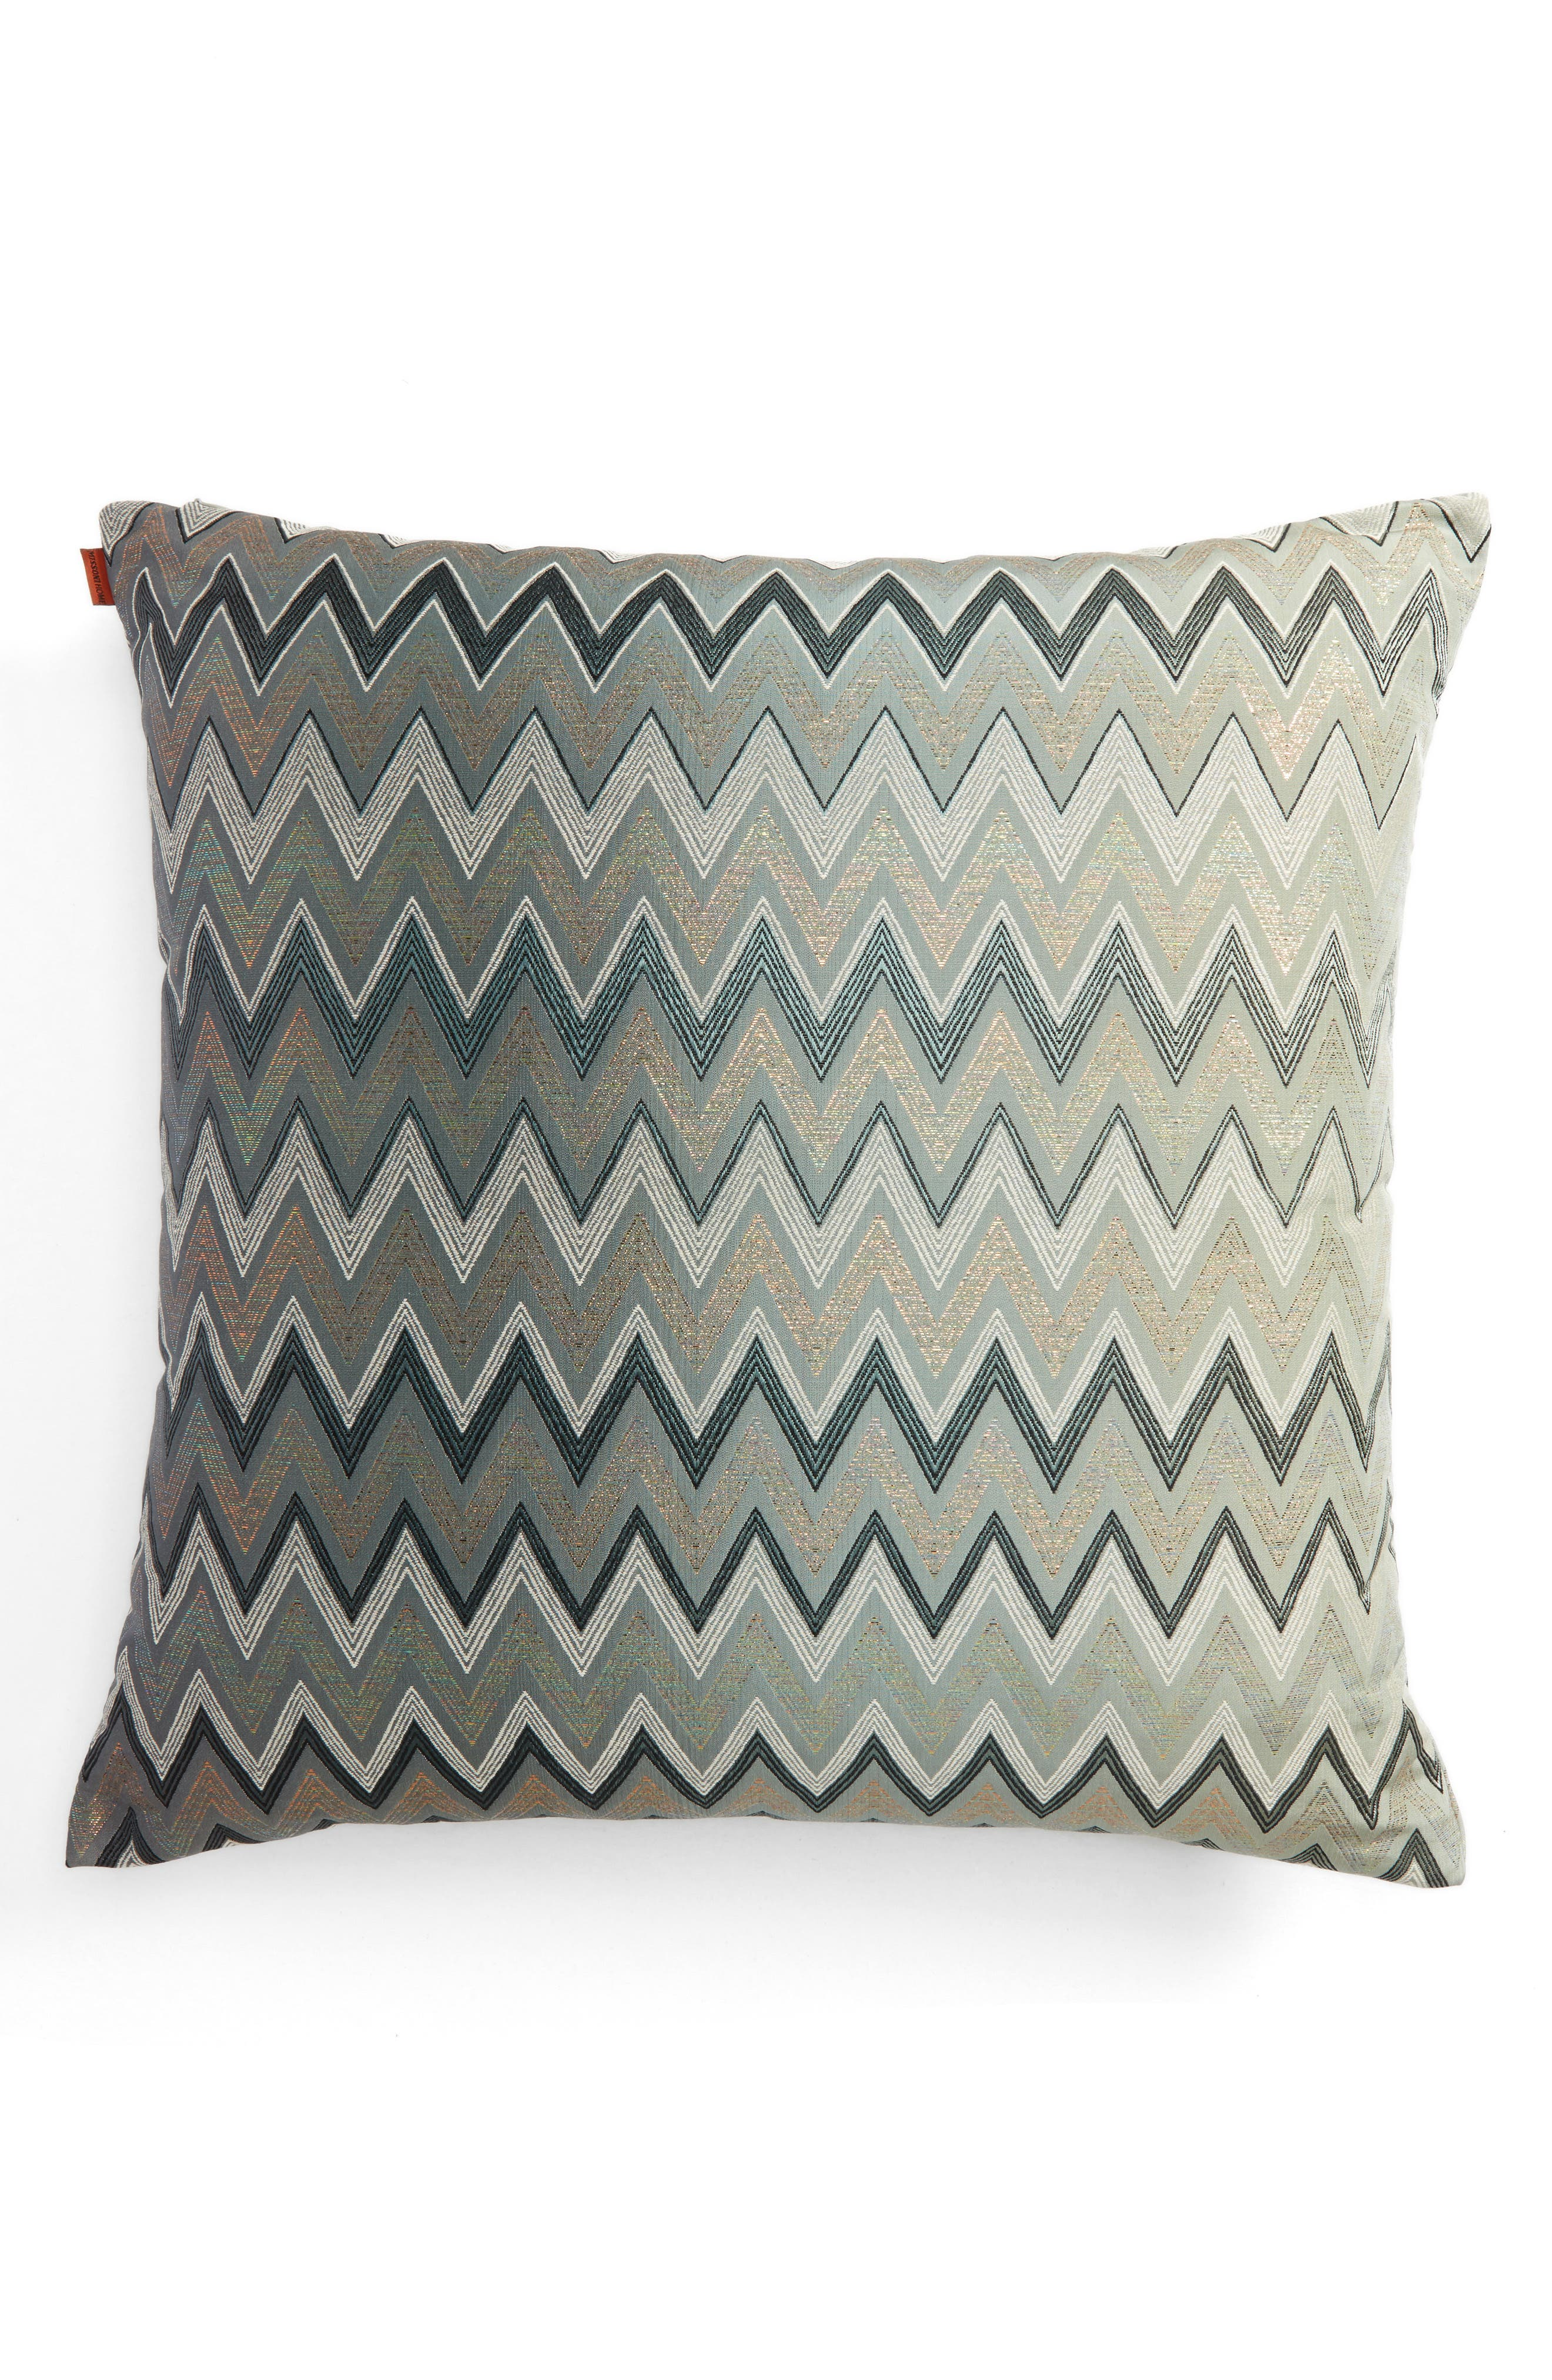 Taipei Accent Pillow,                             Main thumbnail 1, color,                             MULTI BLUE